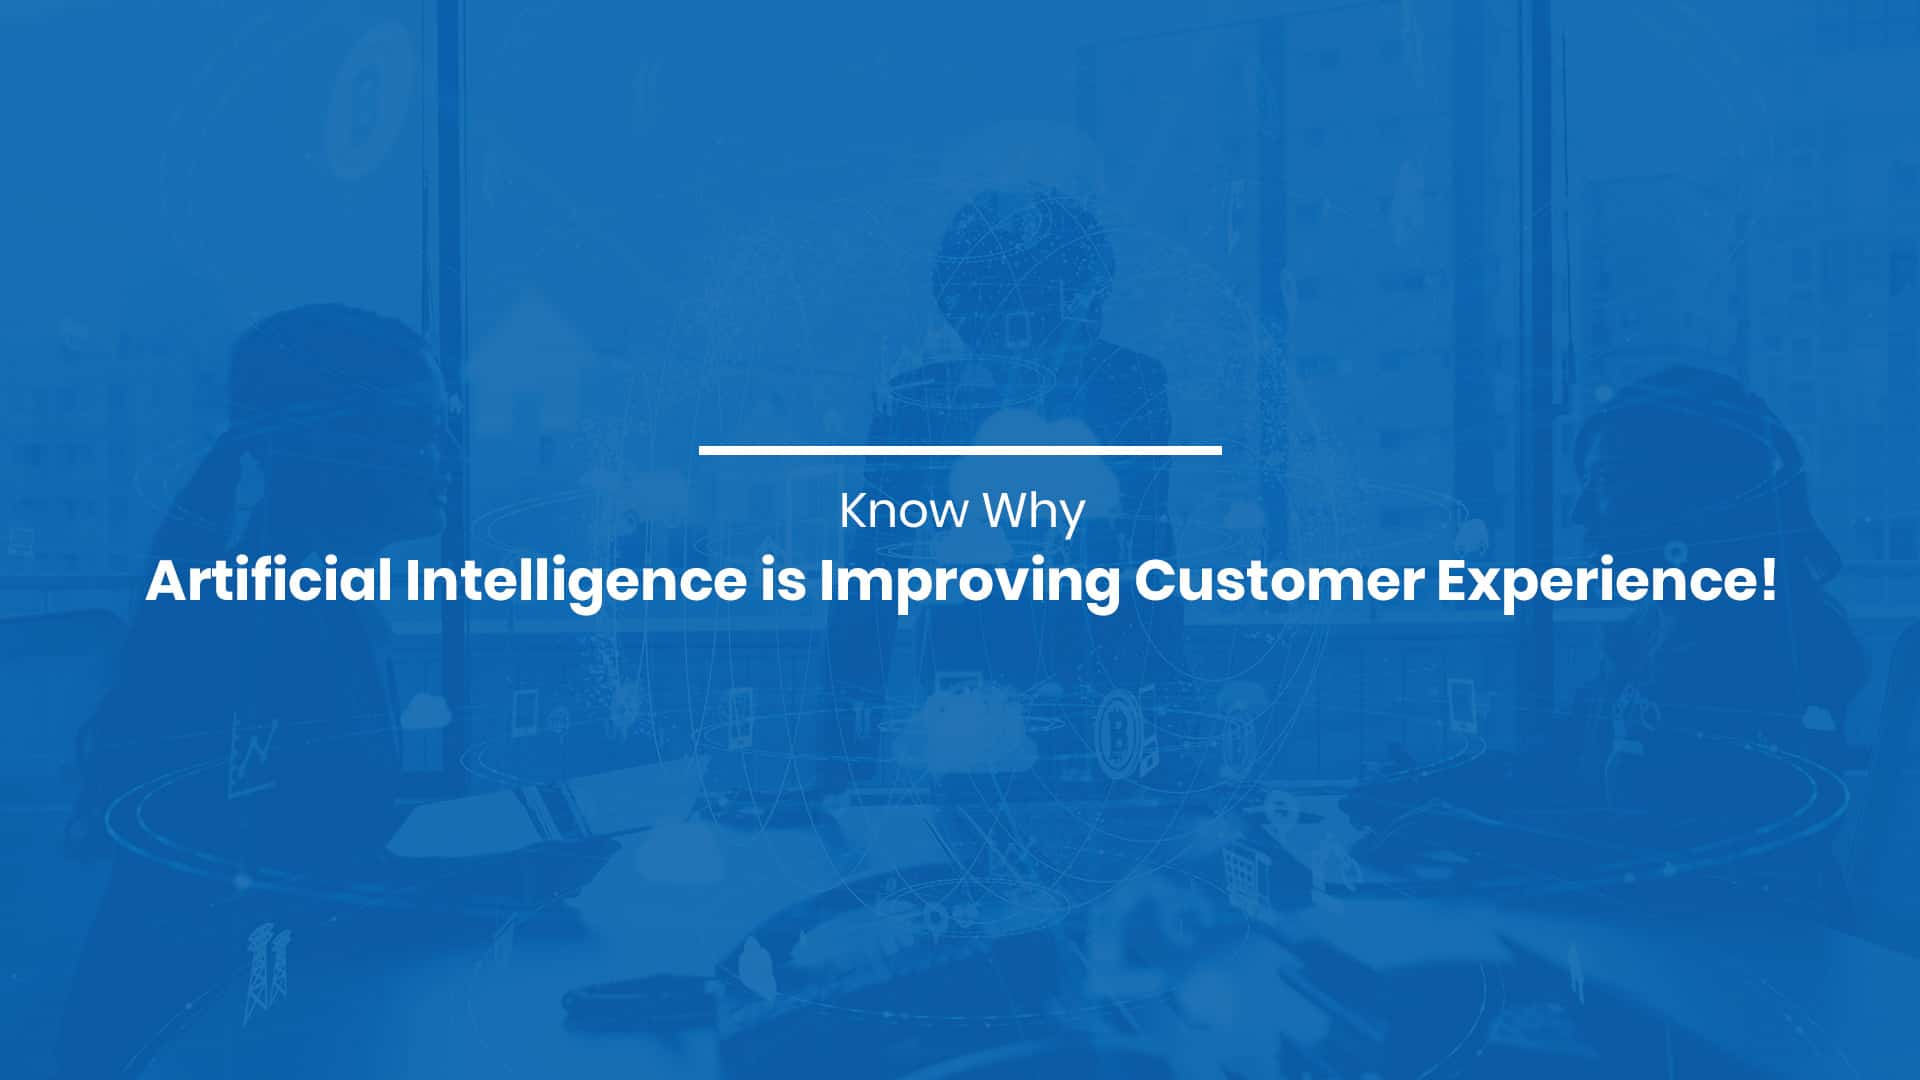 Know Why Artificial Intelligence is Improving Customer Experience!